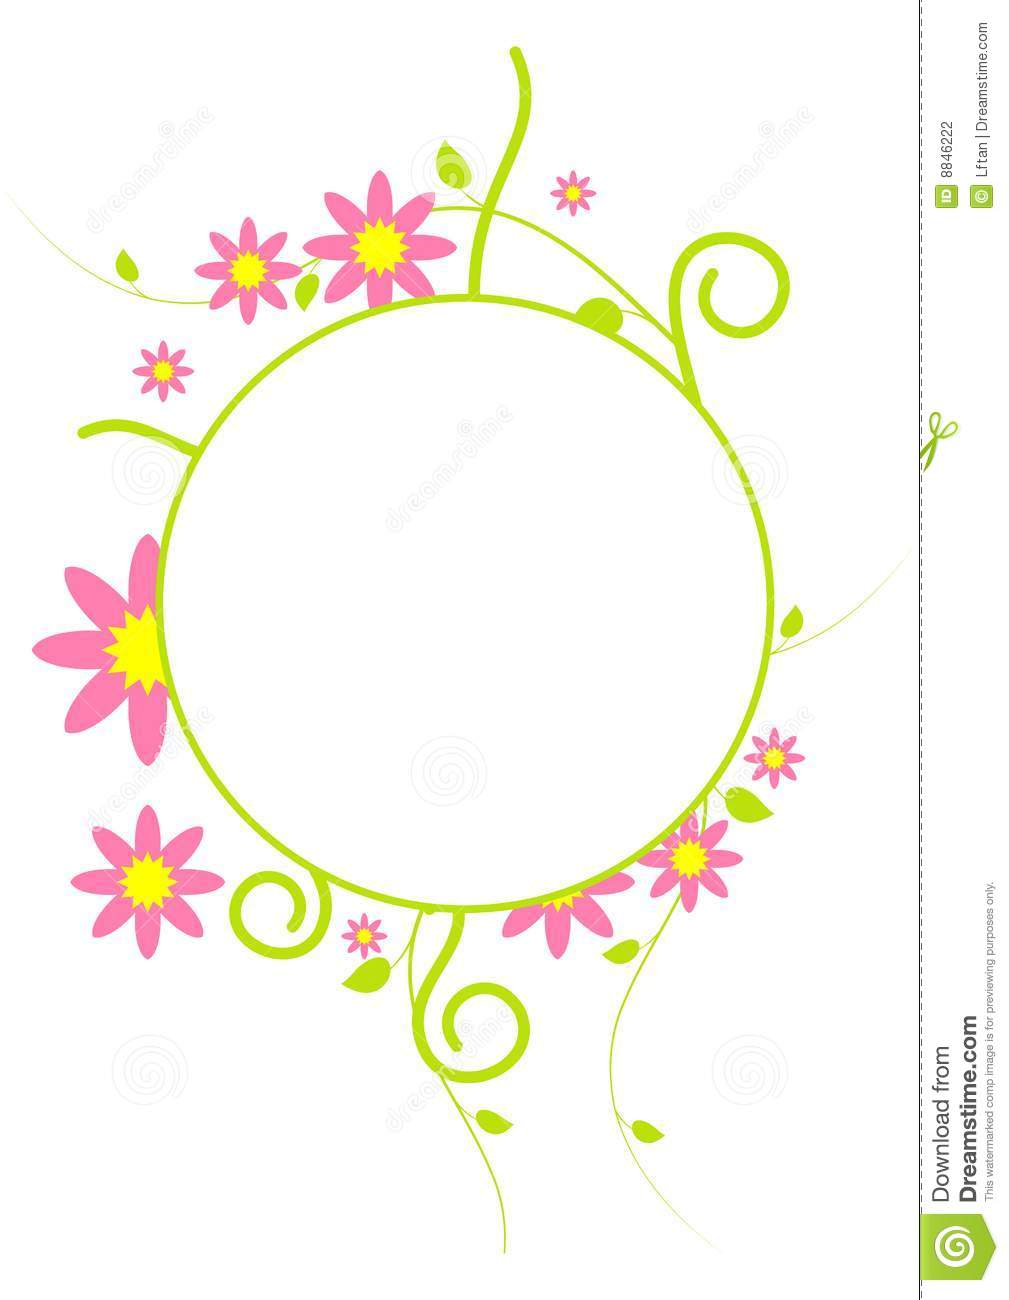 Gallery For > Flower Circle Border